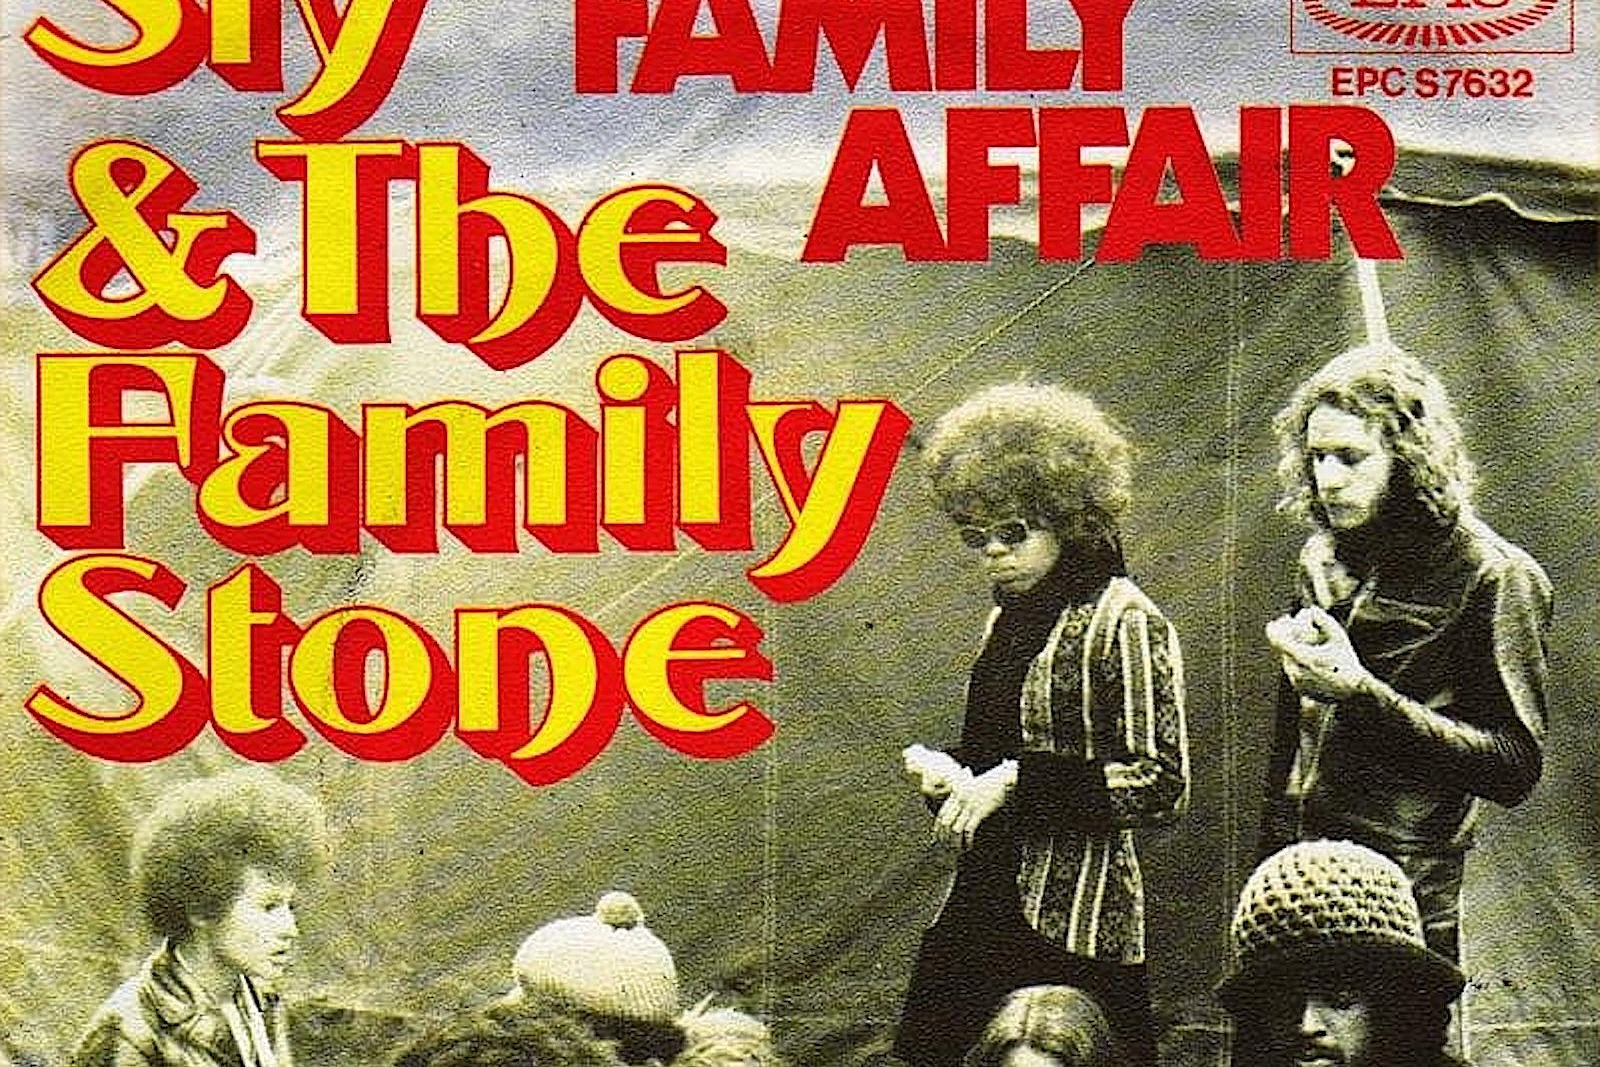 50 Years Ago: Sly and Family Stone Splinter on 'Family Affair'